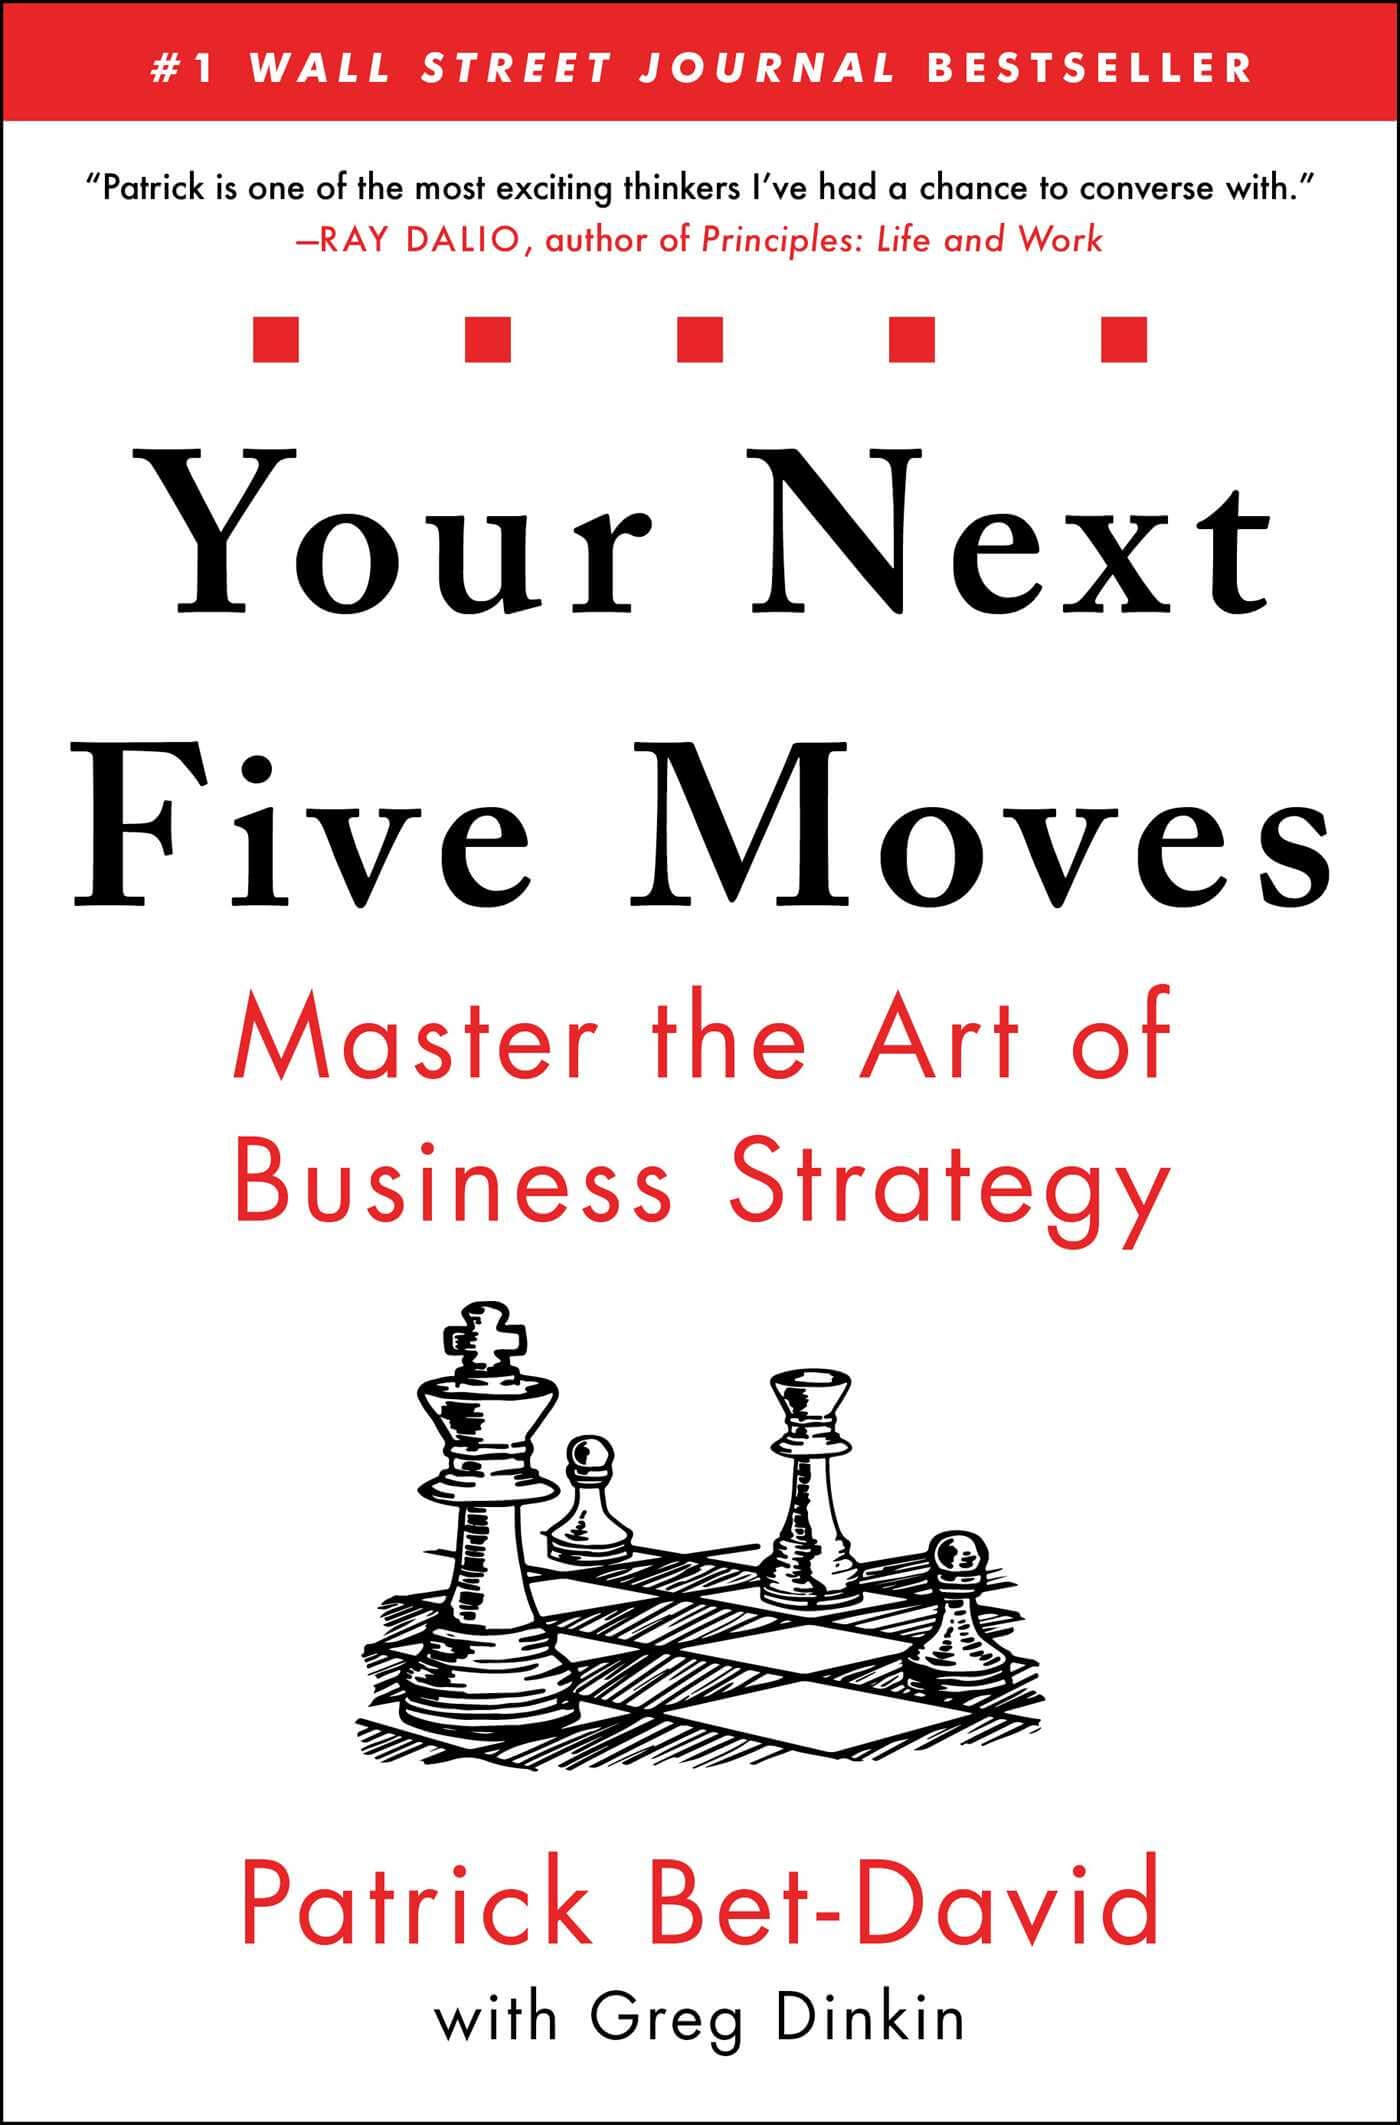 Cover of Your Next Five Moves Book by Patrick Bet-David